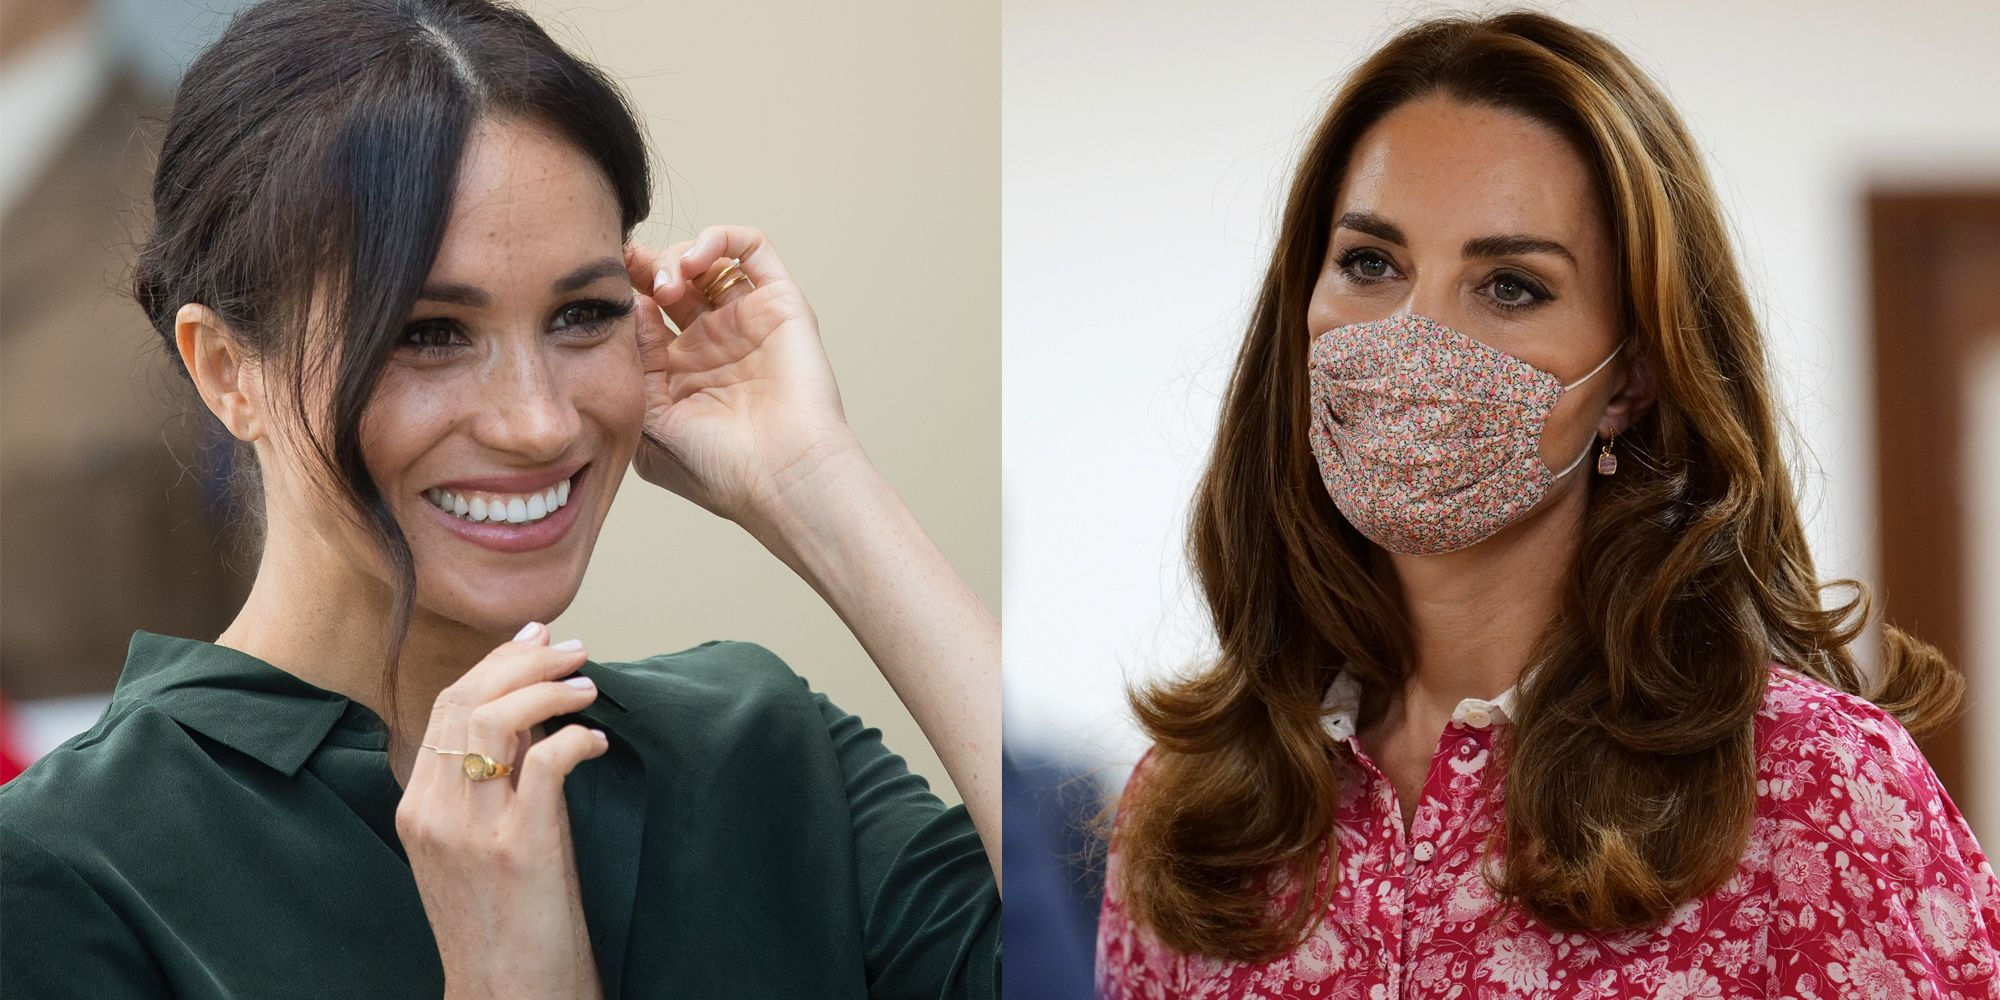 Meghan Markle And Kate Middleton's Exact Missoma Jewelry Is On Sale Right Now